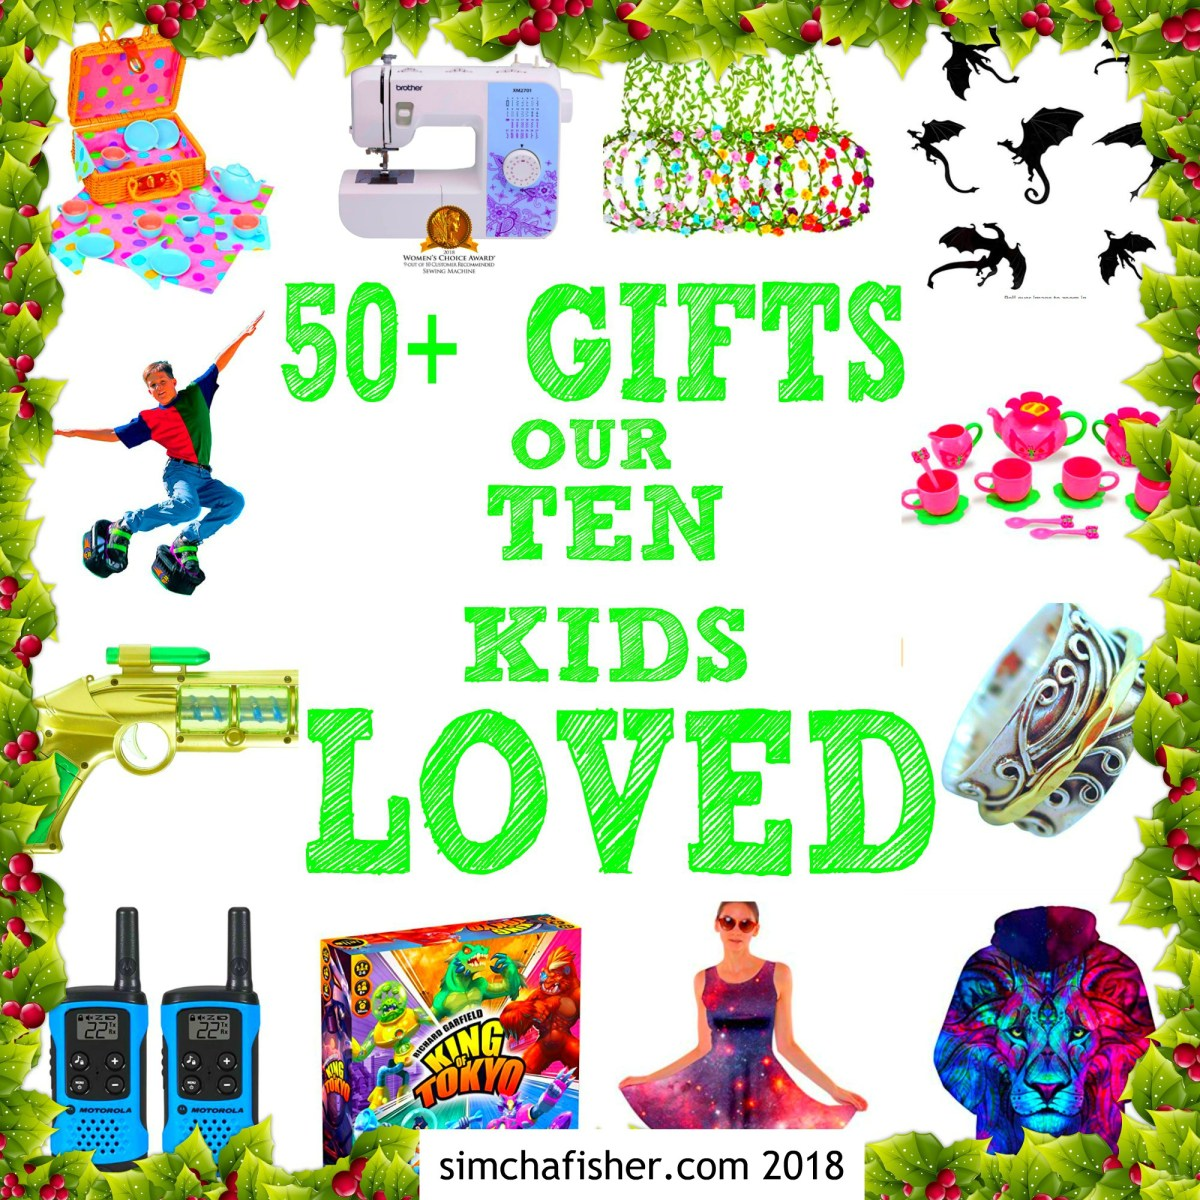 e11864ef696b0 50+ Gifts our ten kids loved  The 2018 list